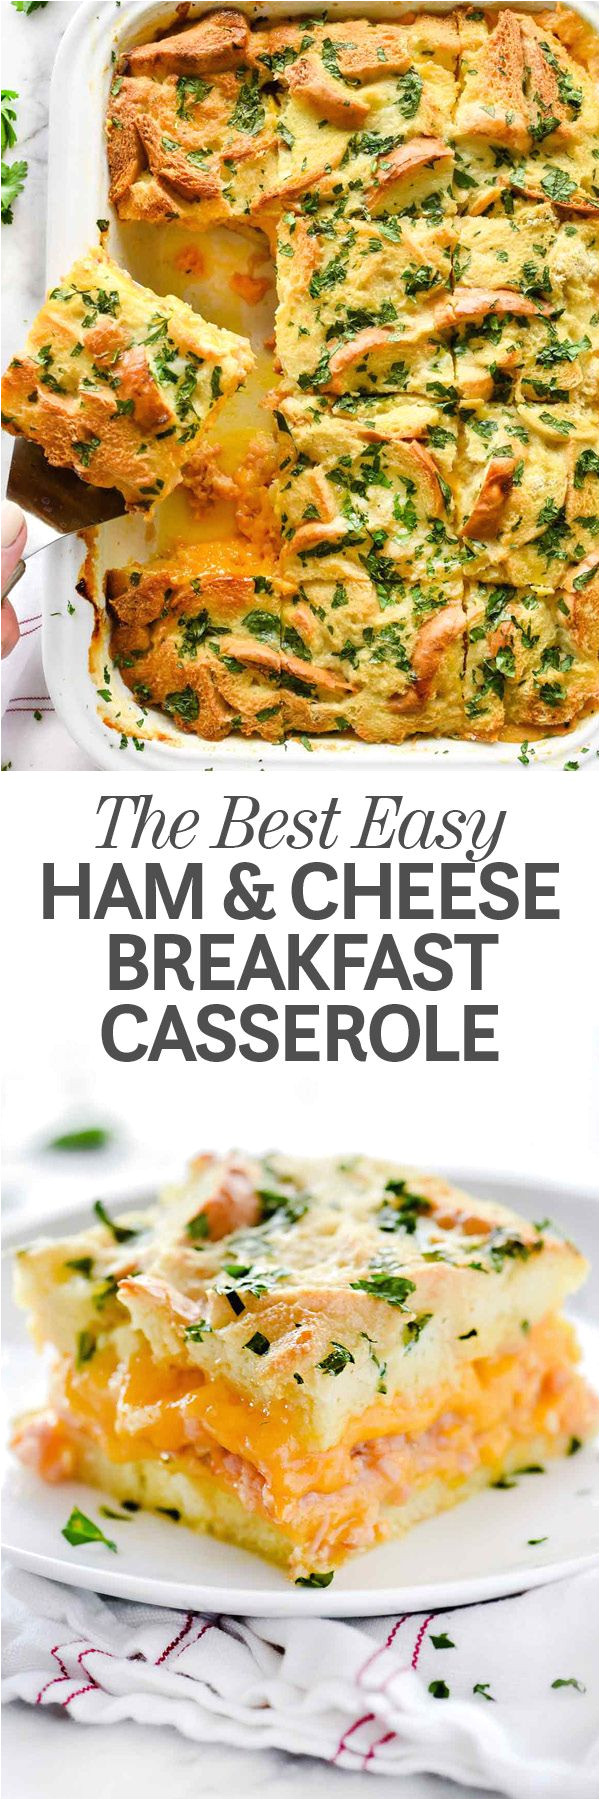 breakfast for a crowd has never been easier thanks to this incredibly easy to assemble make ahead ham and cheese breakfast casserole that some may call a